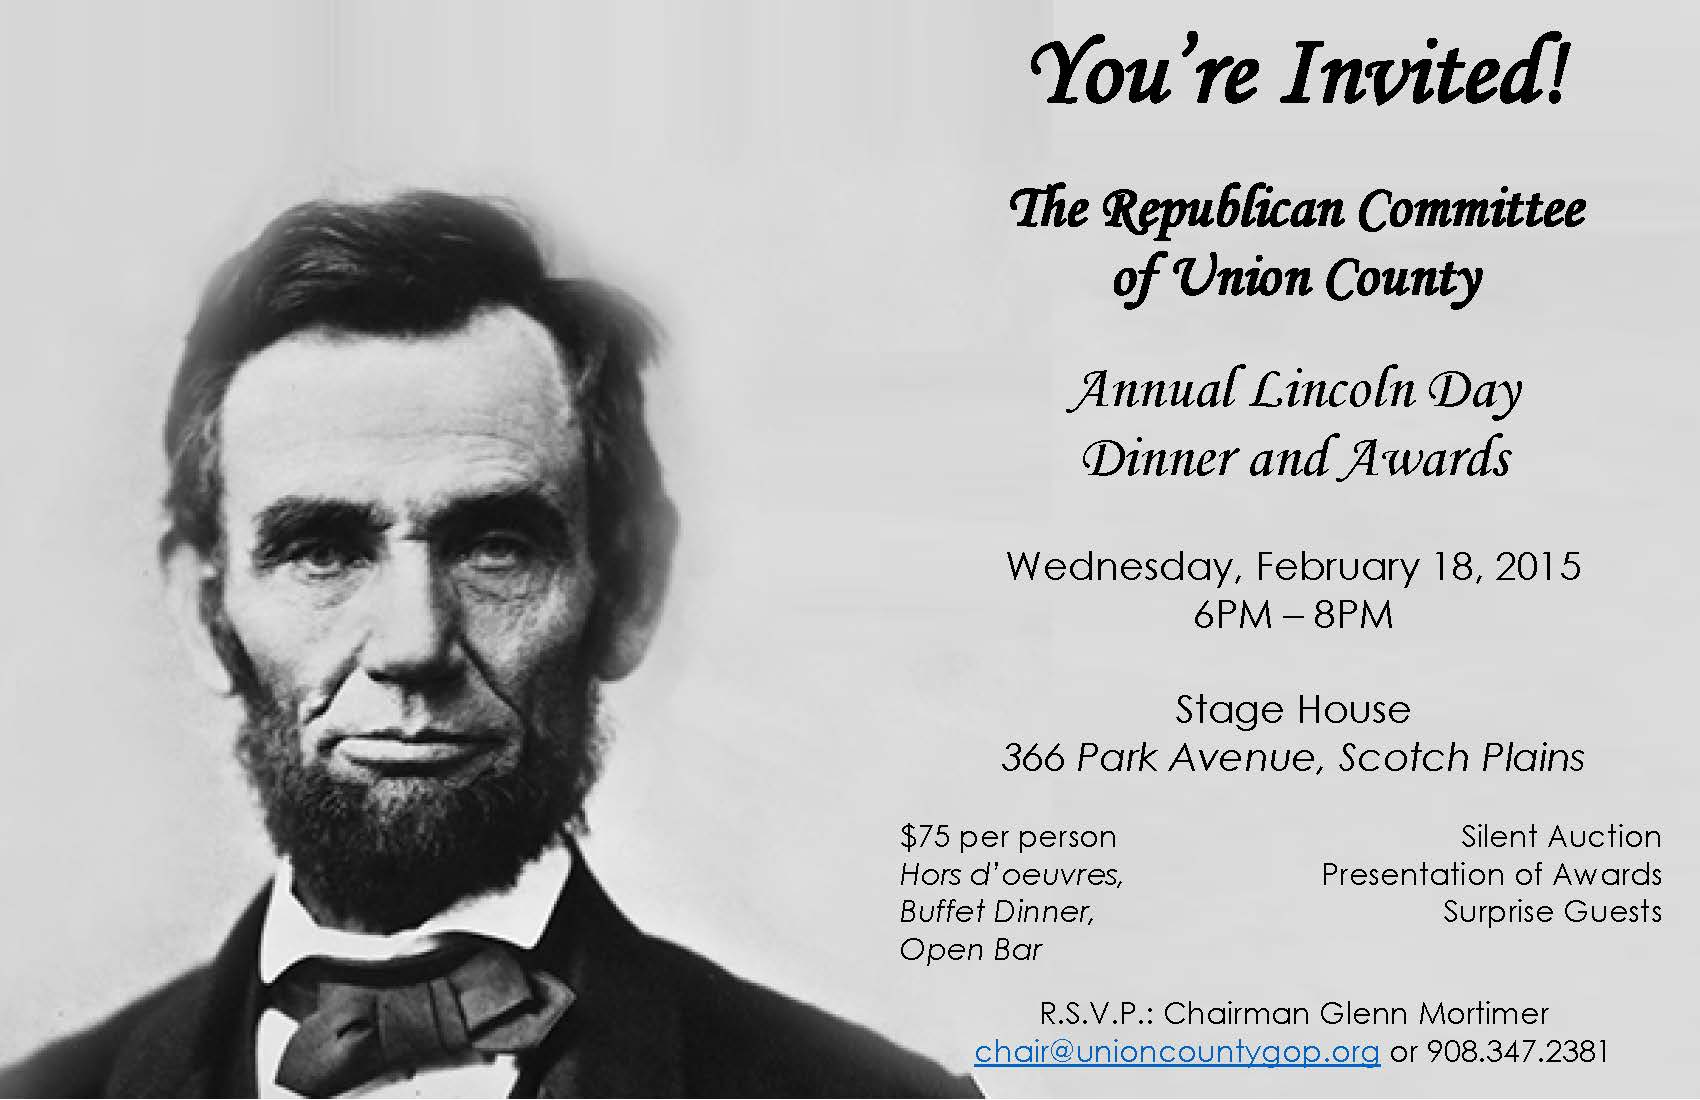 Republican Committee of Union County Annual Lincoln Day Dinner